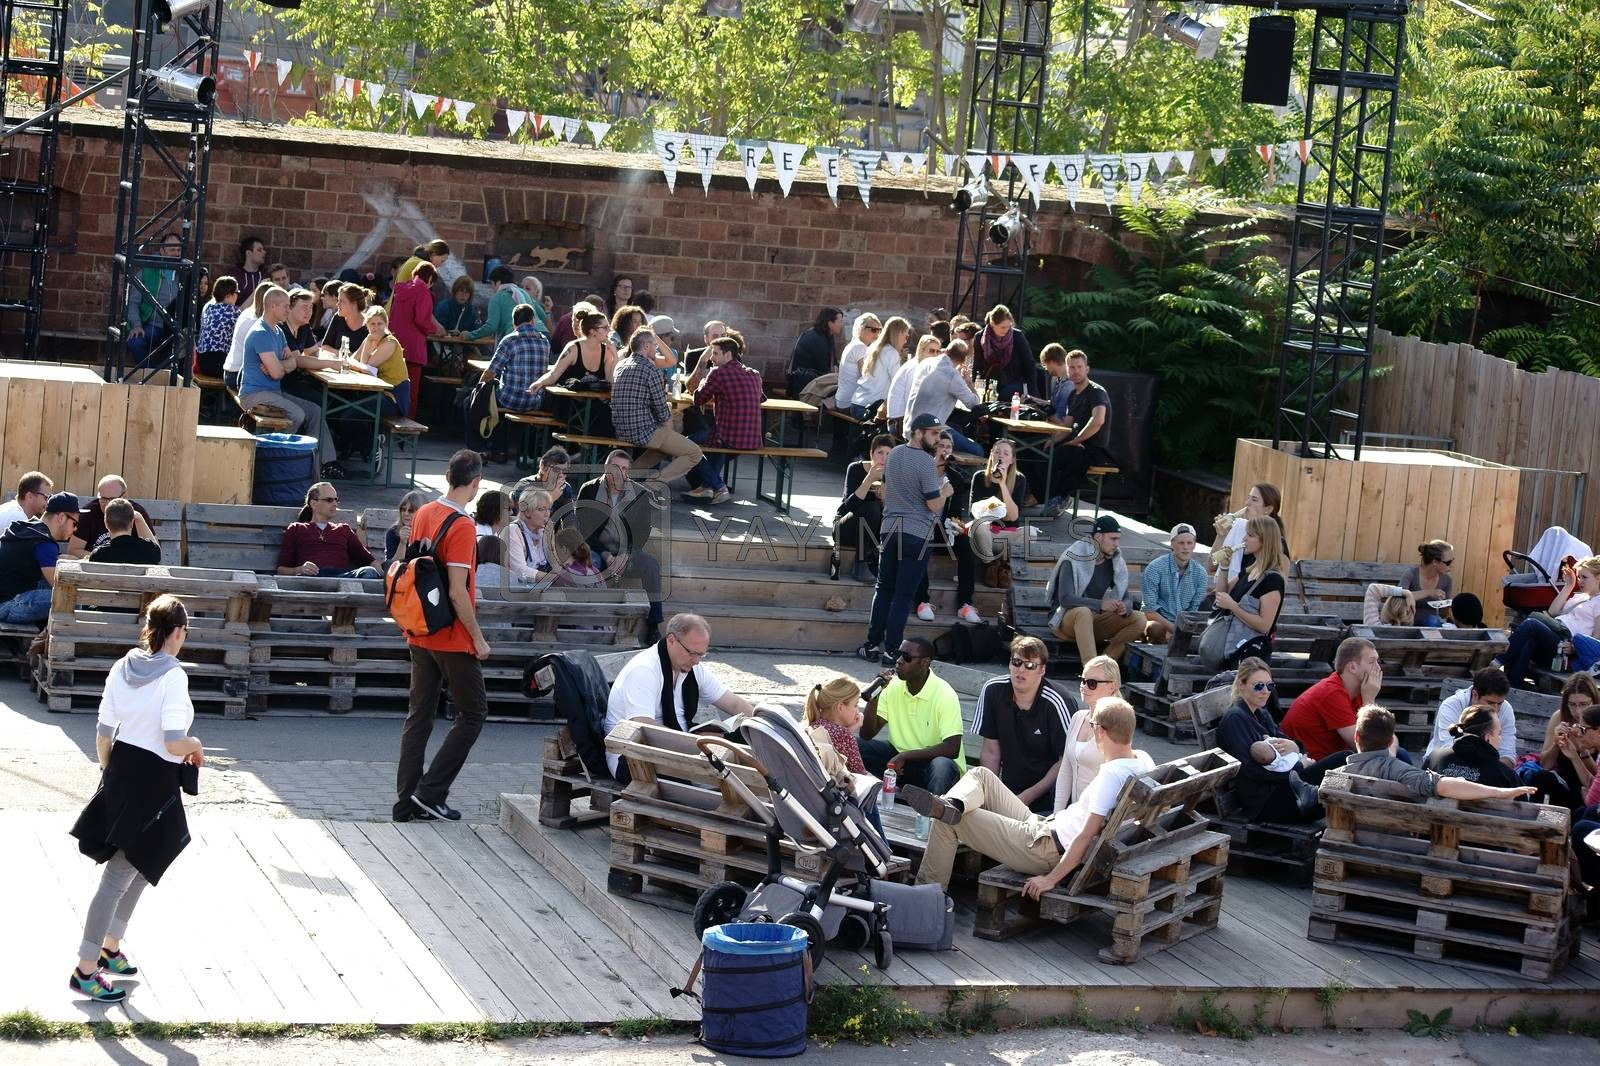 Mainz, Germany - October 02, 2015: Teenage viewers and visitors sit on wooden pallets and at beer tables at the Streefood Festival on October 02, 2015 in Mainz.